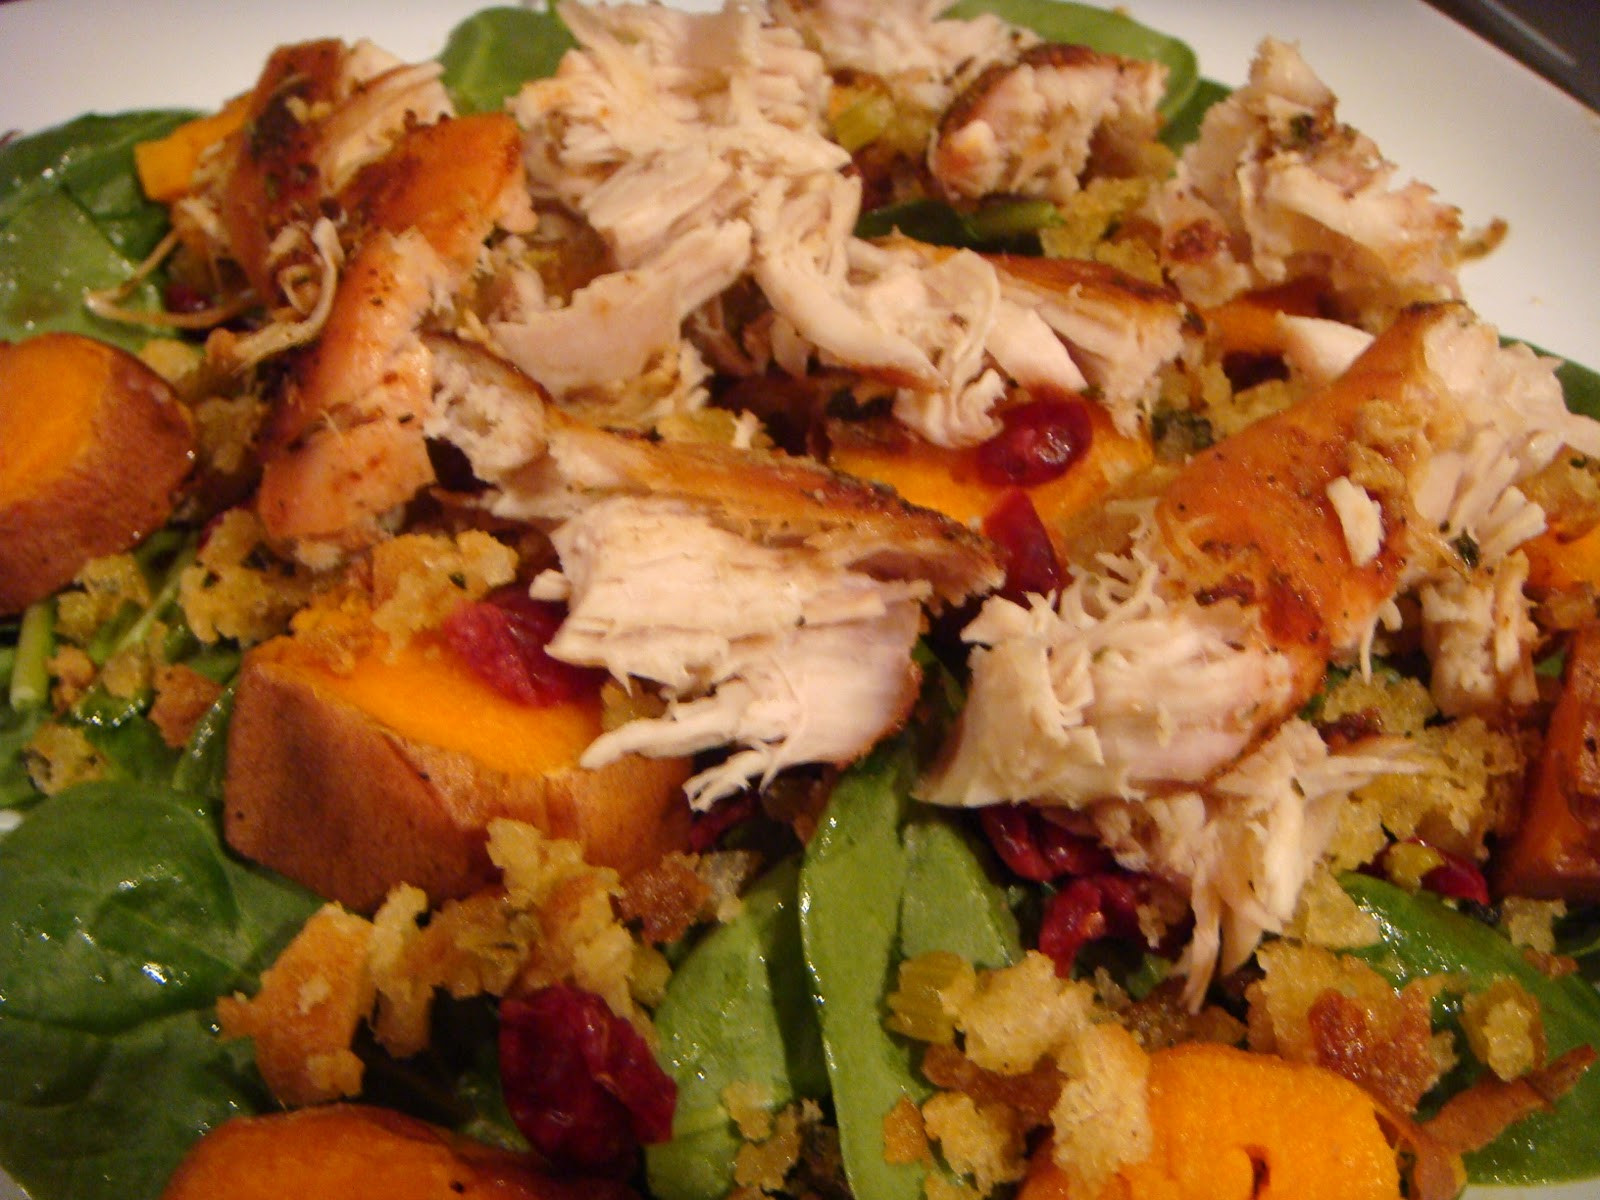 Salad For Thanksgiving Dinner  Delicious Dishings Thanksgiving Dinner Salad